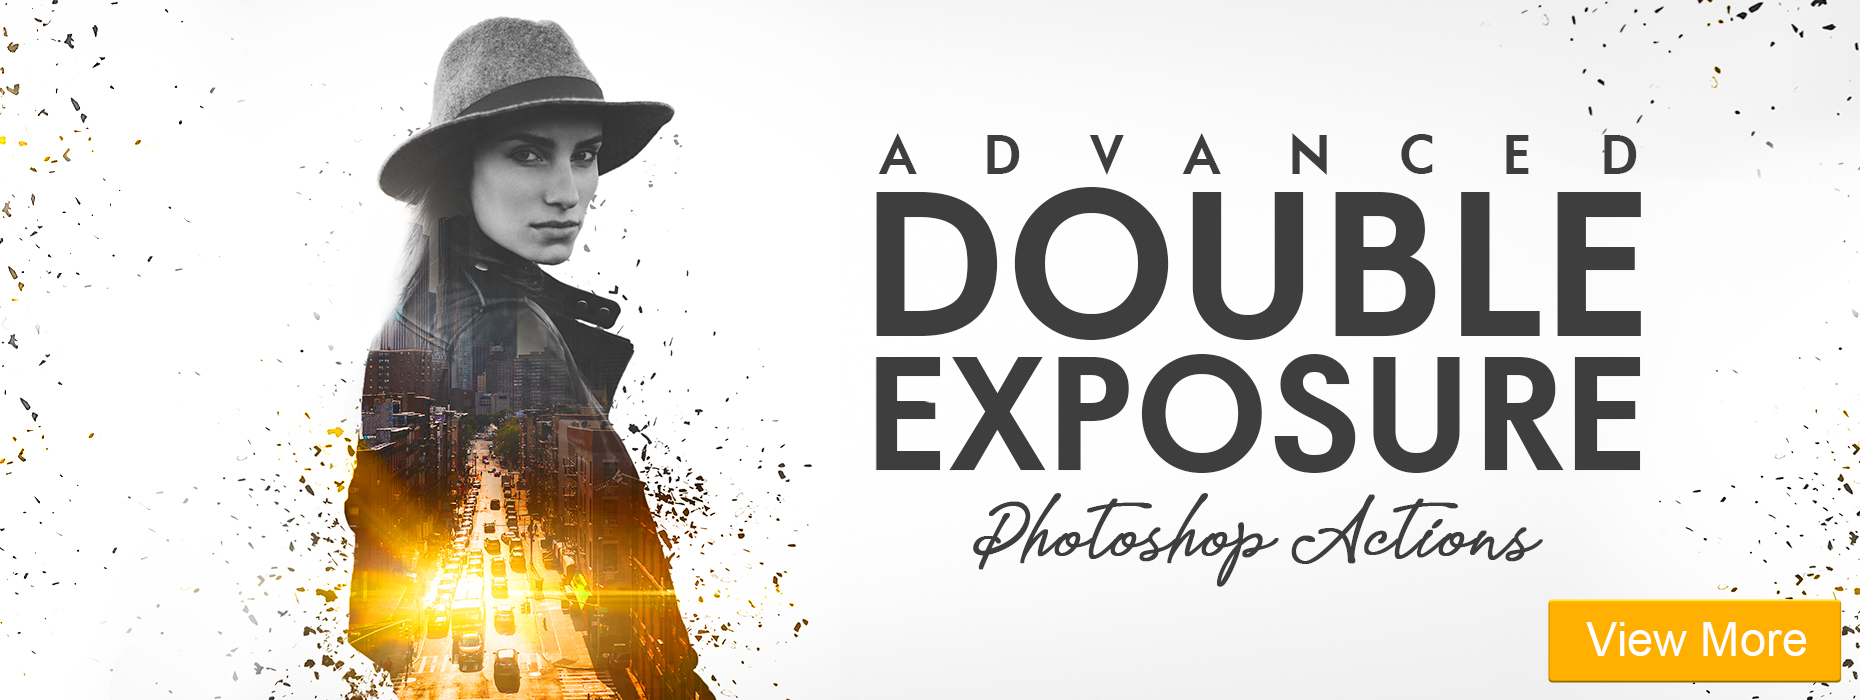 free black and white photoshop actions advanced double exposure banner girl